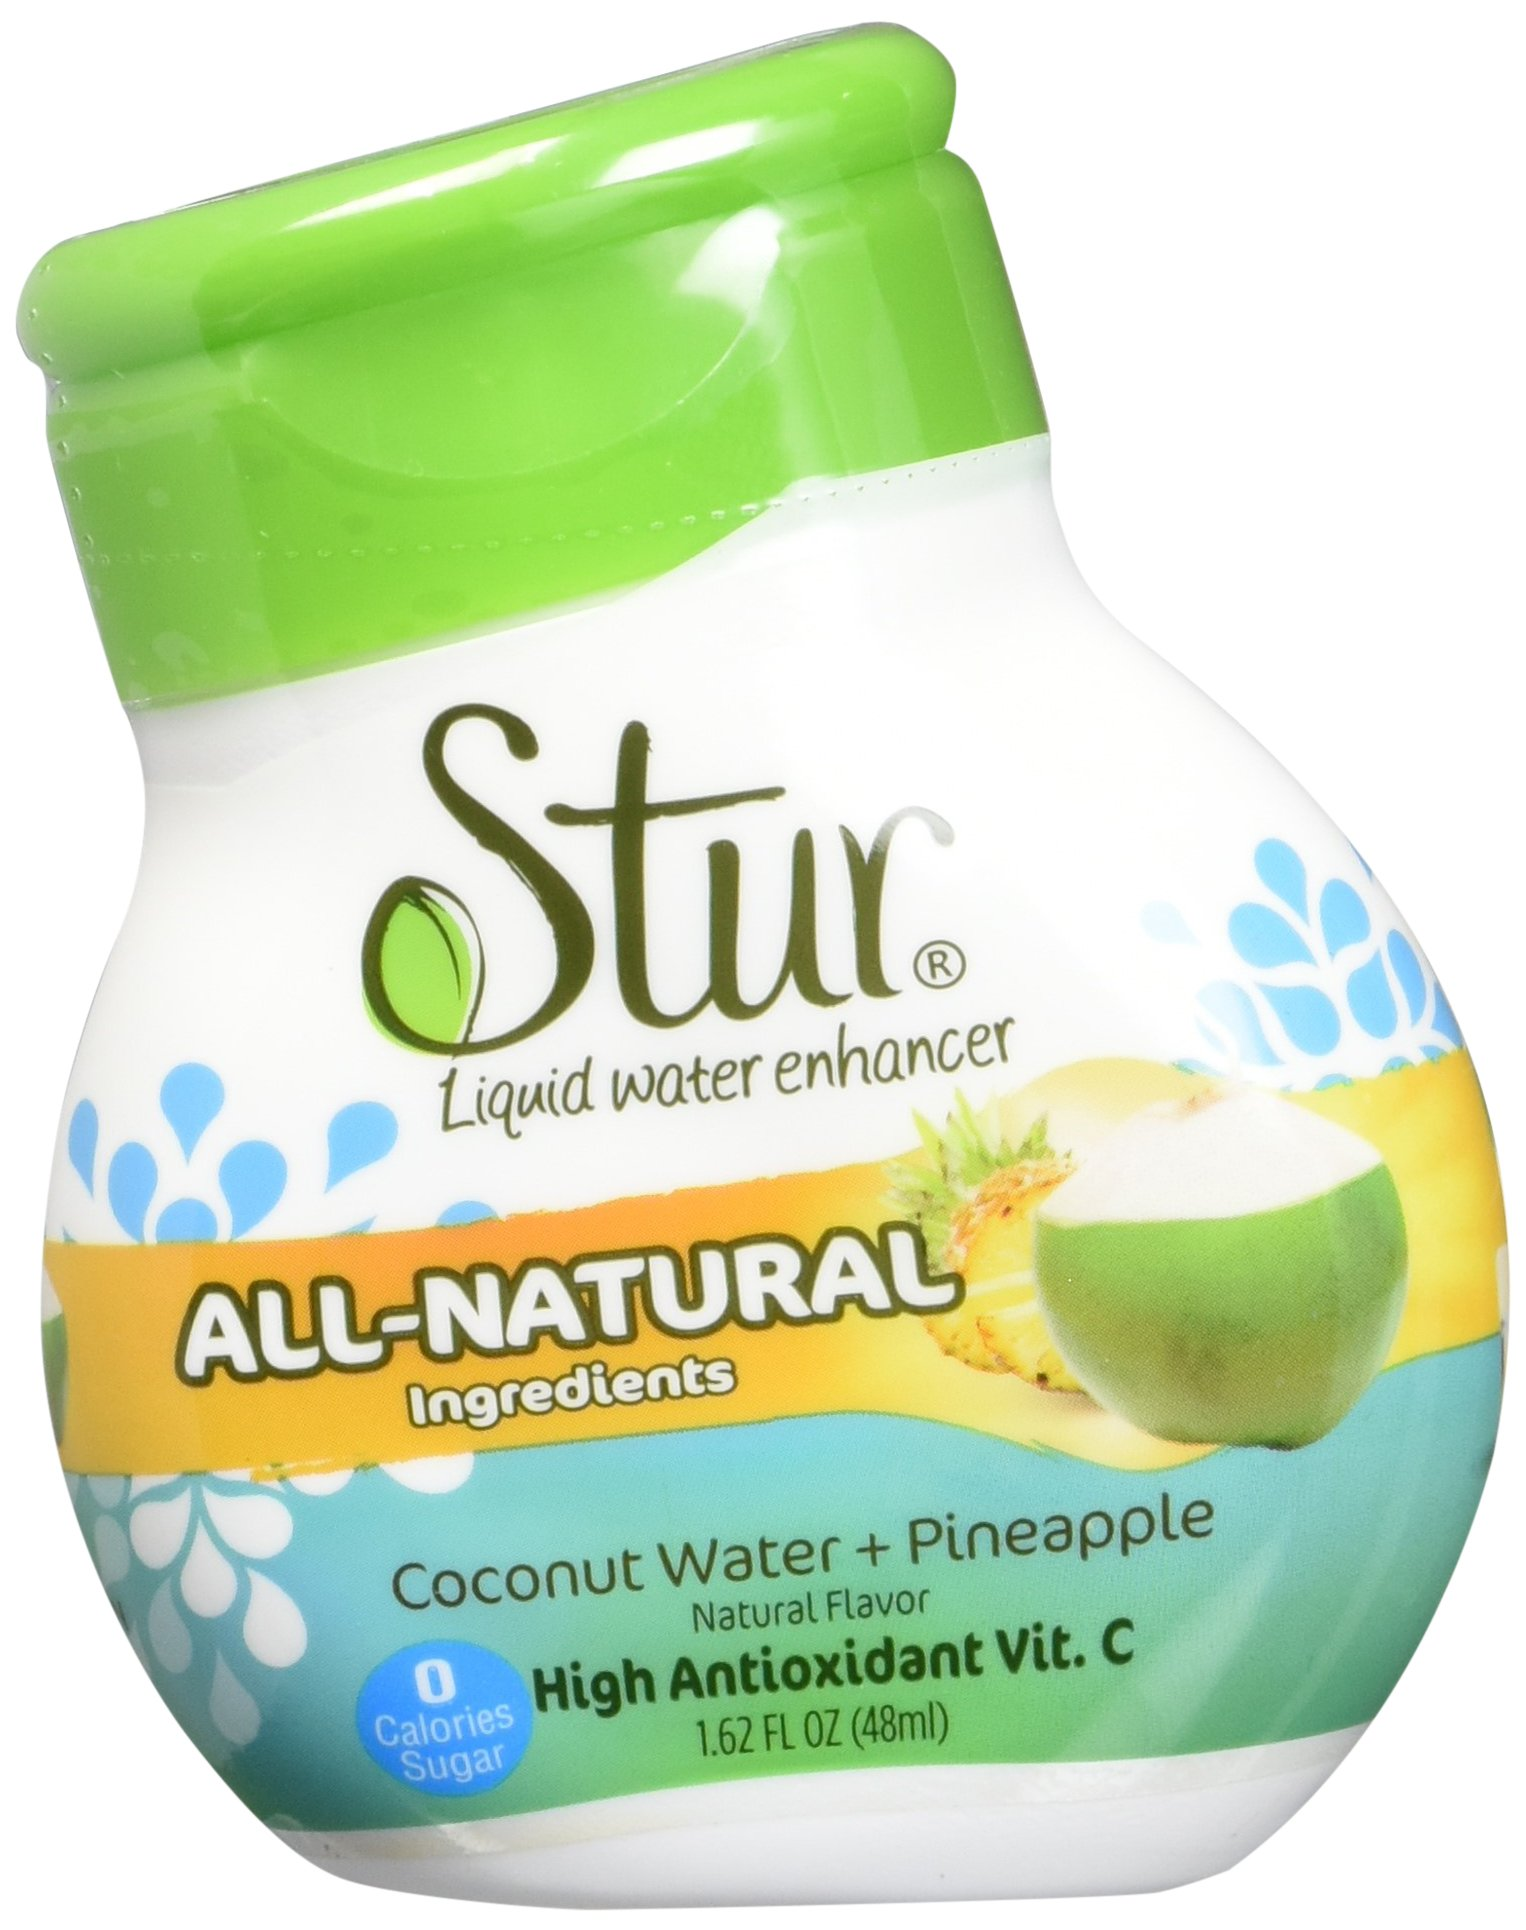 Stur Drinks - Coconut Pineapple Natural Water Enhancer Liquid Drink Mix Sugar Free Zero Calorie Vitamin C Stevia Make Your Own Fruit Infused Flavored Waters Makes 100 Drinks